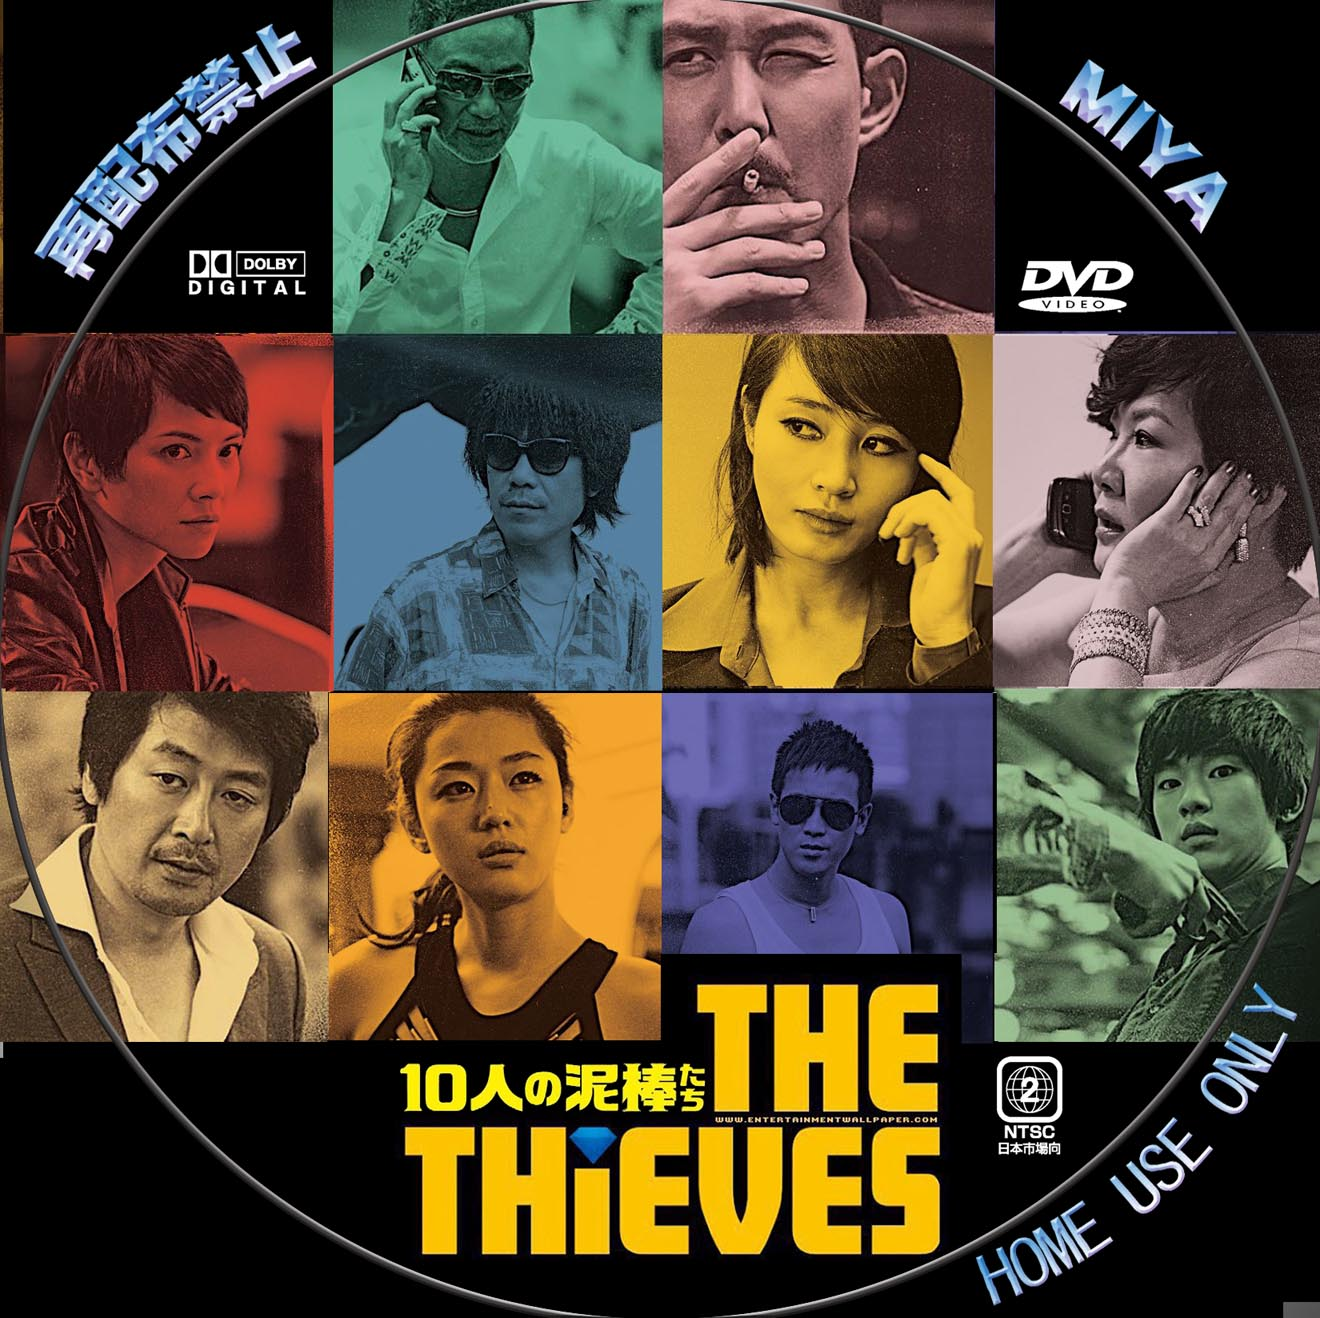 The Thieves